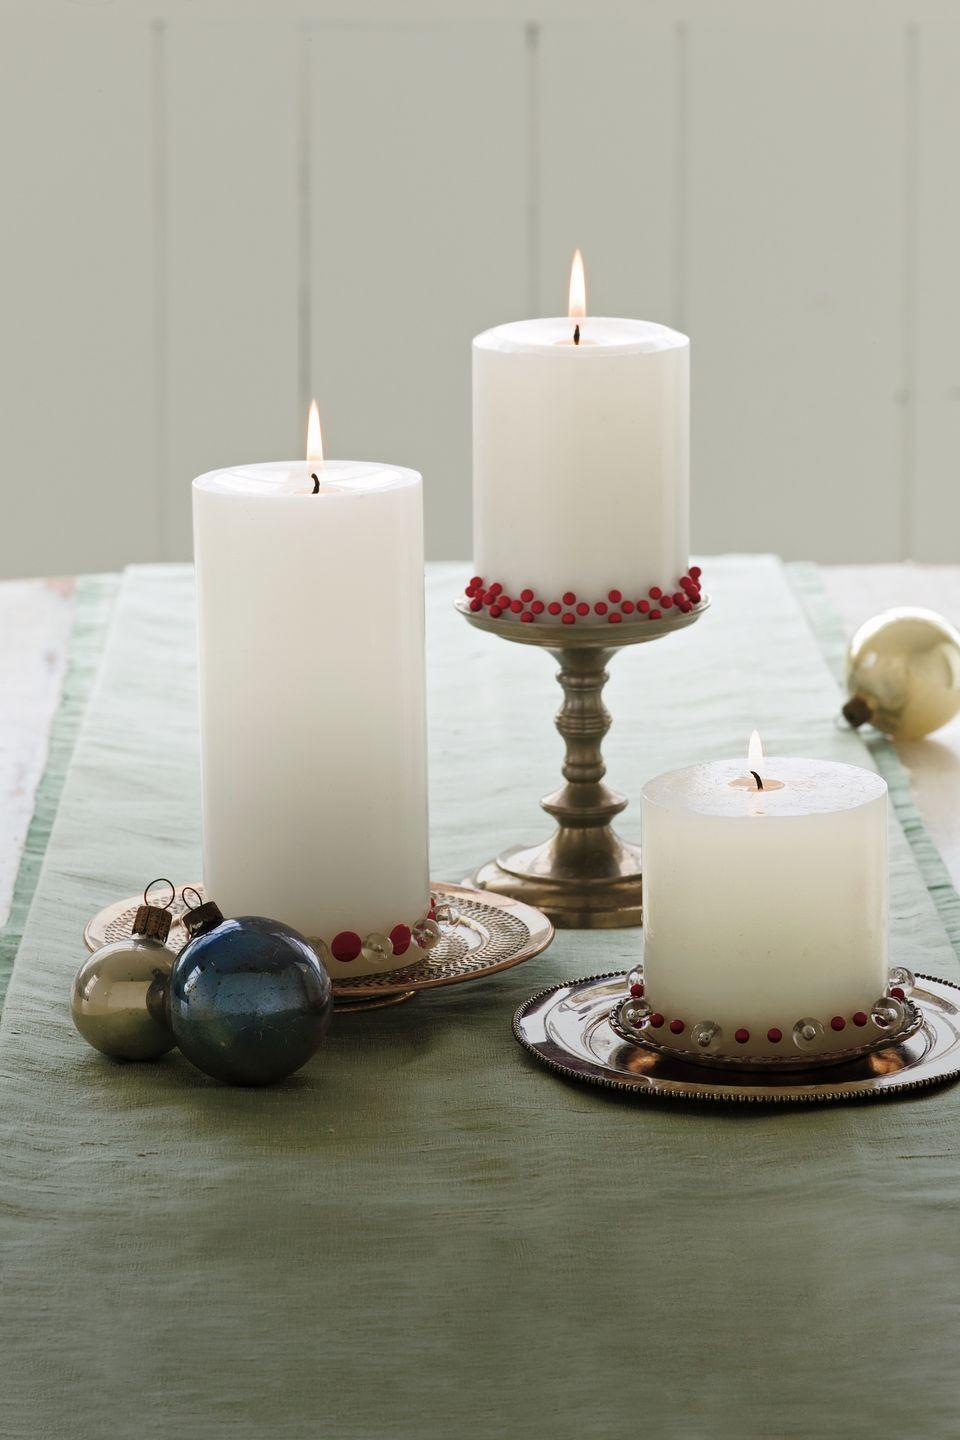 <p>Decorative candles are rarely cheap, and when they've burned down, your investment has burned up. For a more affordable glow, buy plain pillar candles and embellish them with thumbtacks and pushpins. </p>